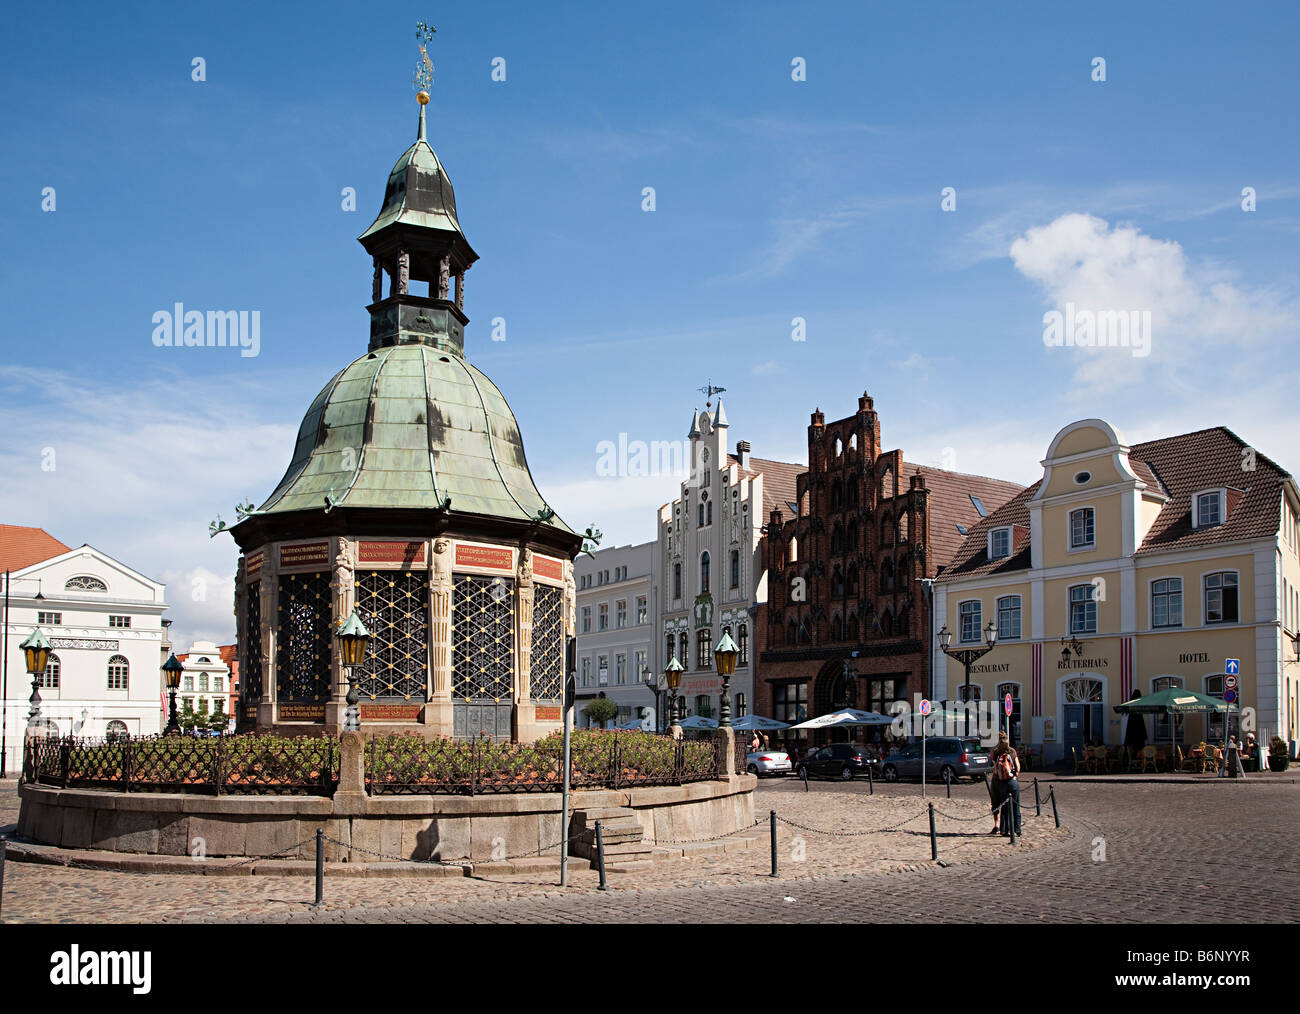 Wasserkunst waterworks 12 sided well to supply drinking water from a well in the market place Wismar Germany - Stock Image